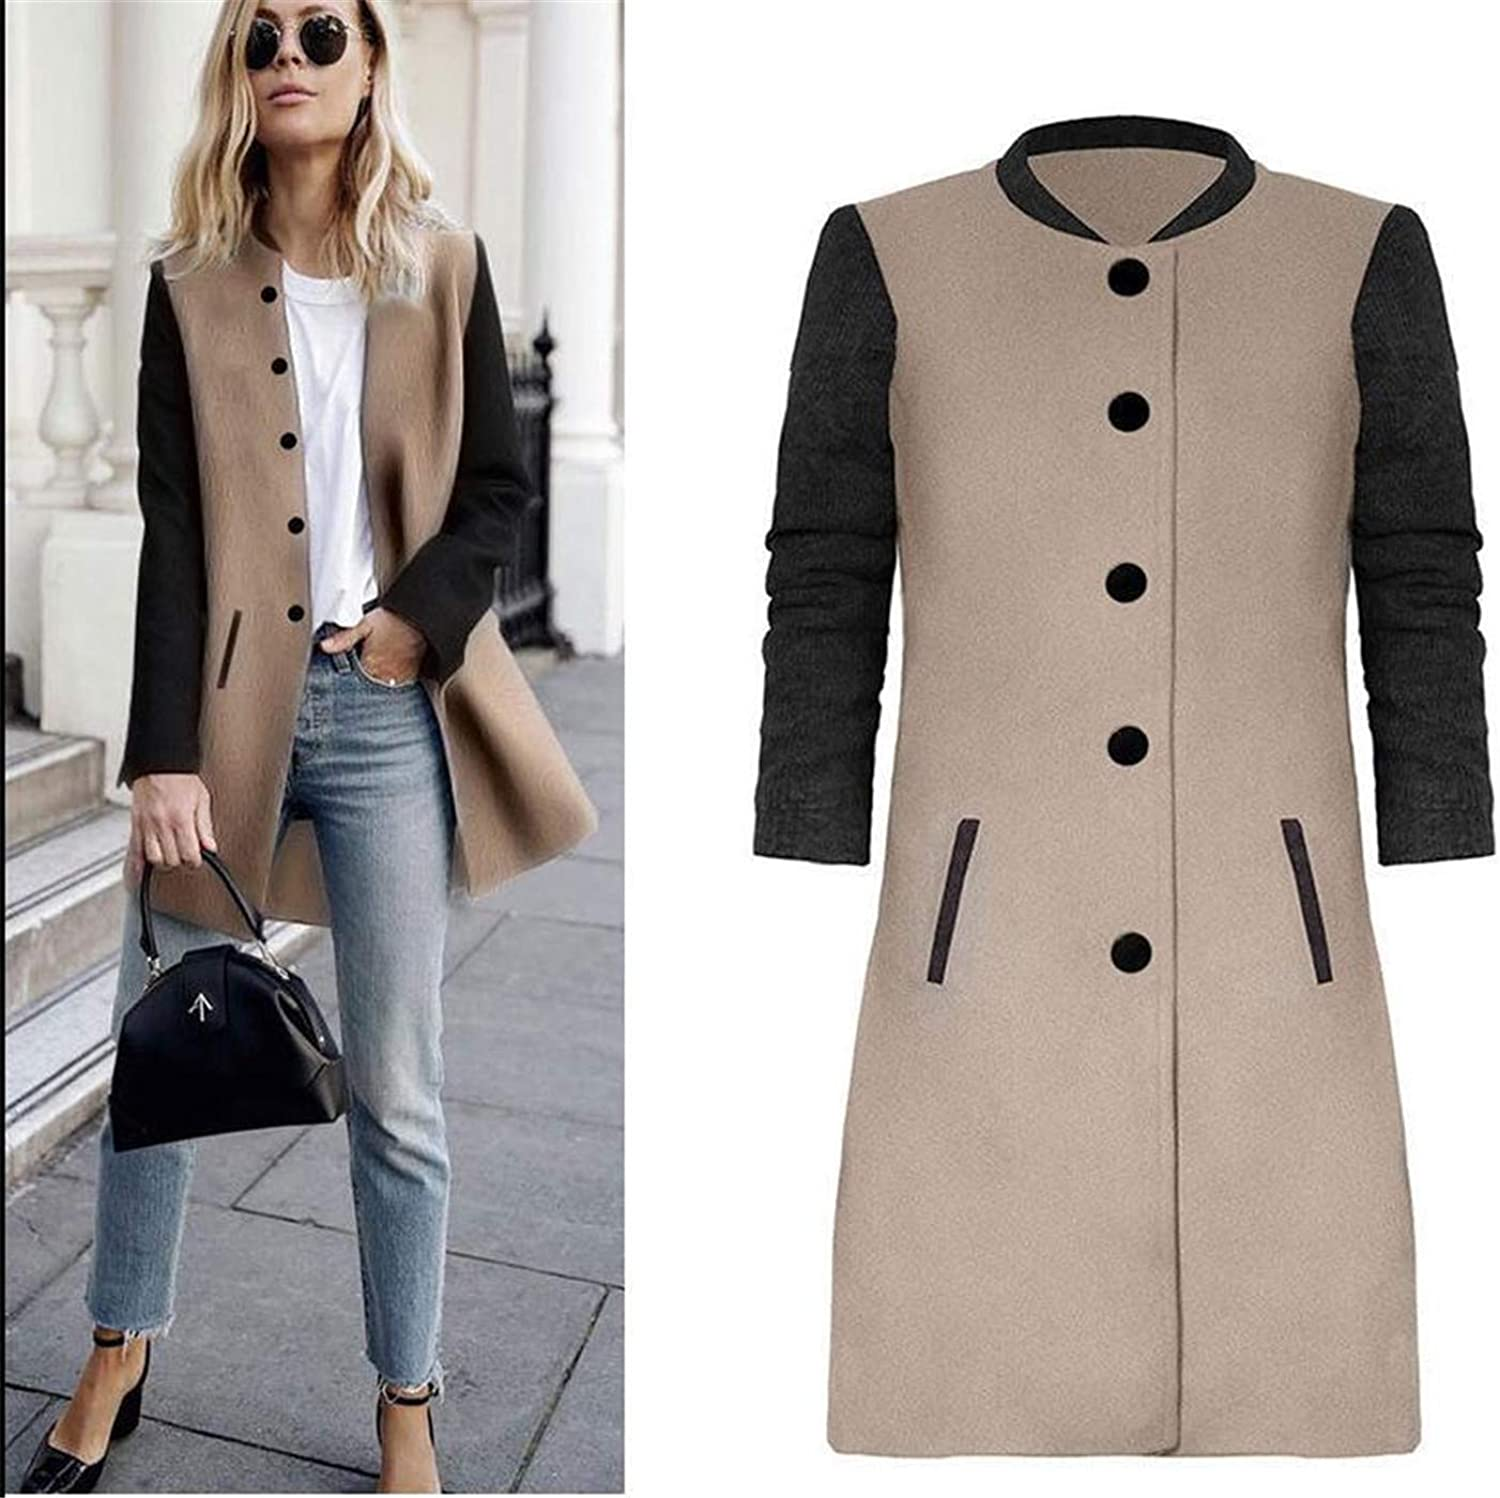 Soluo Womens Slim Fit Single Breasted Overcoat Color Block Pea Coat Outwear Jacket Tops